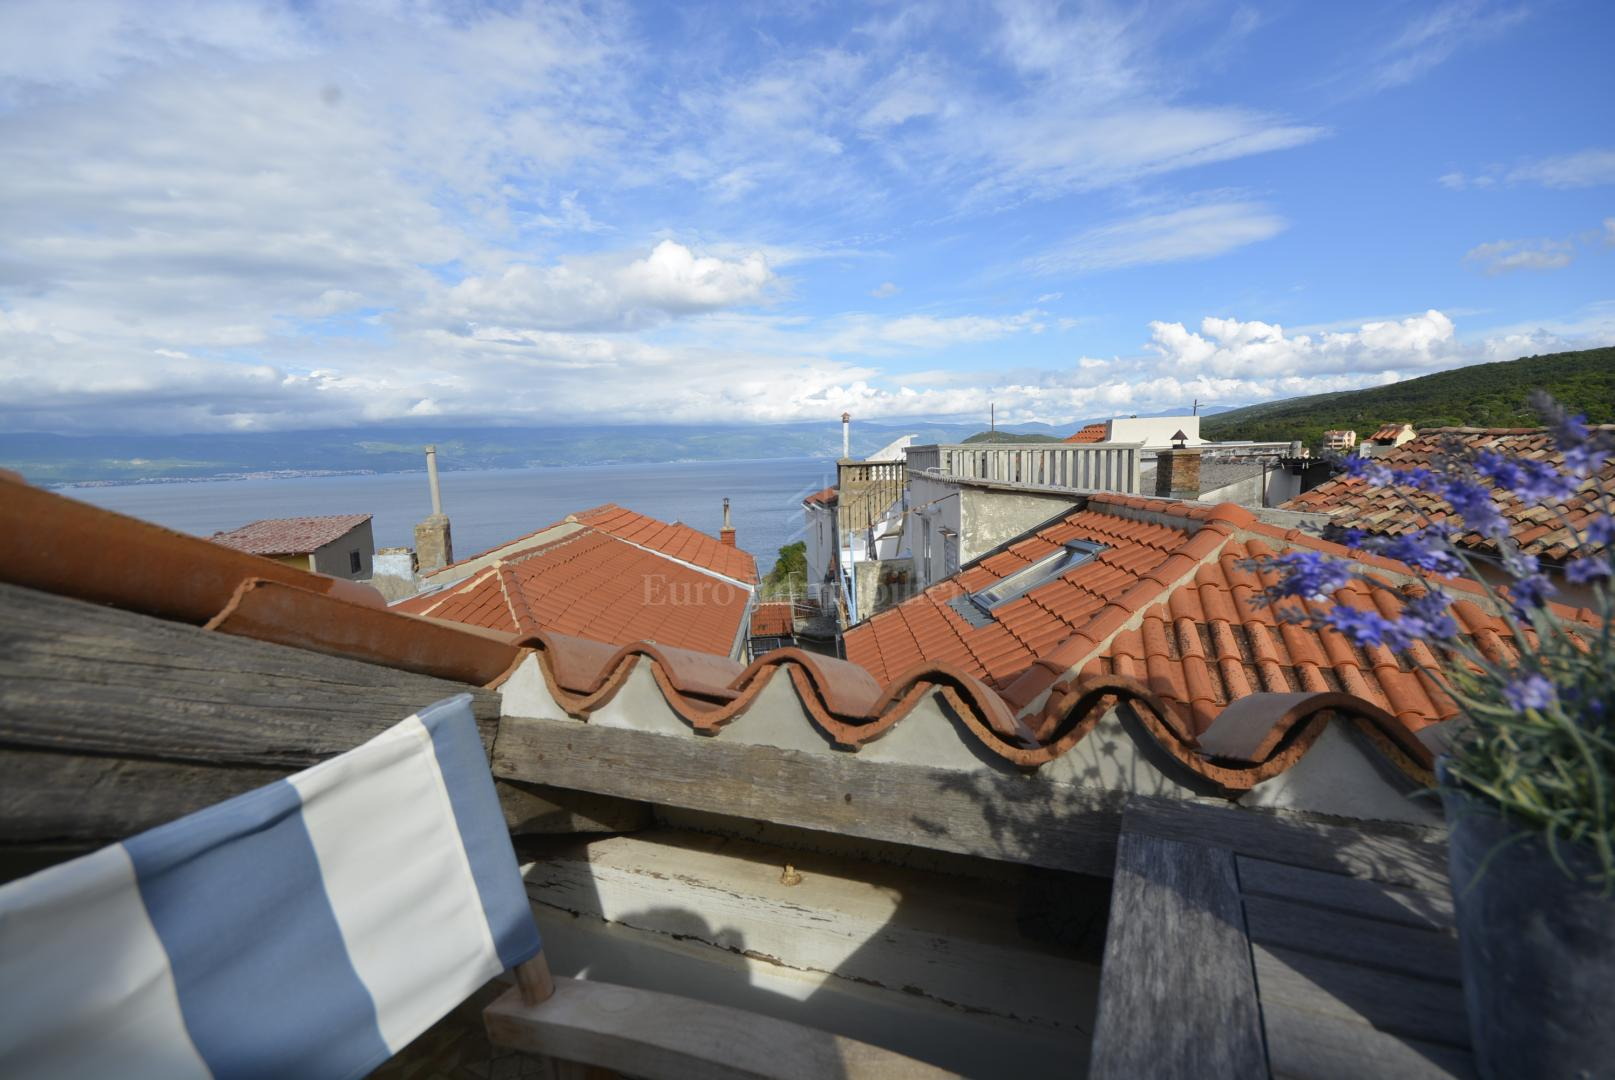 The indigenous mediterranean house in a row with a sea view